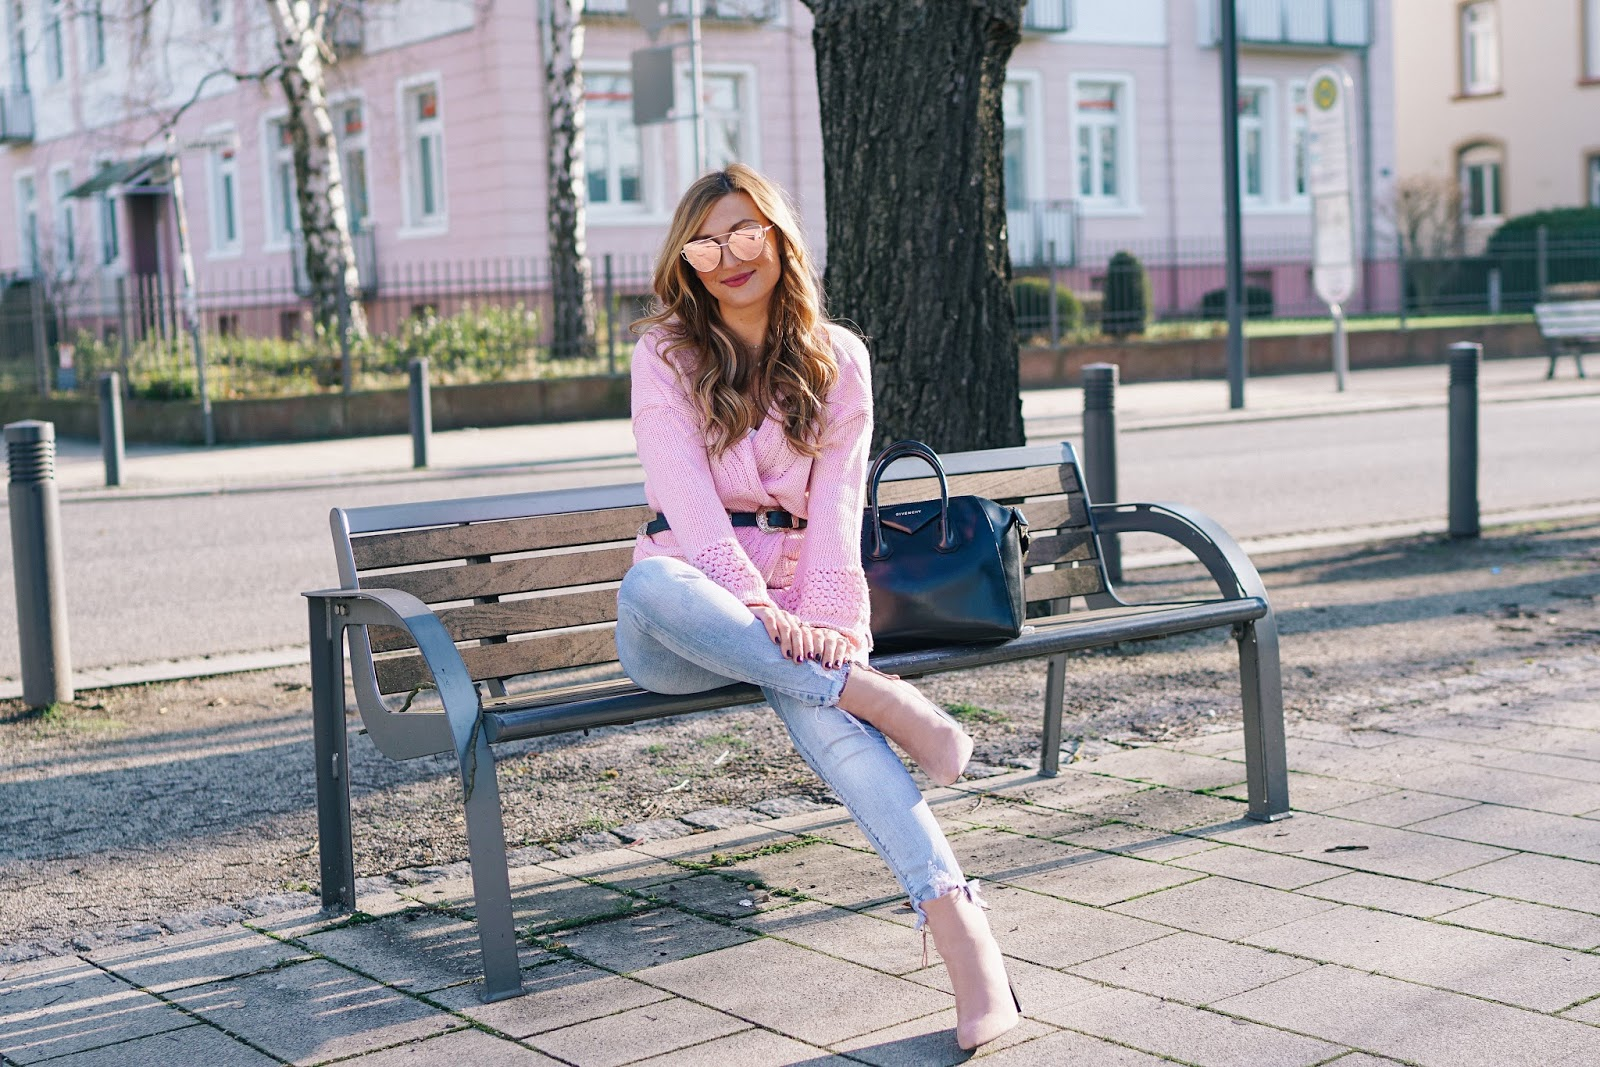 Rosa-stiefeletten-bloggerstyle-blogger-outfit-fashionstylebyjohanna